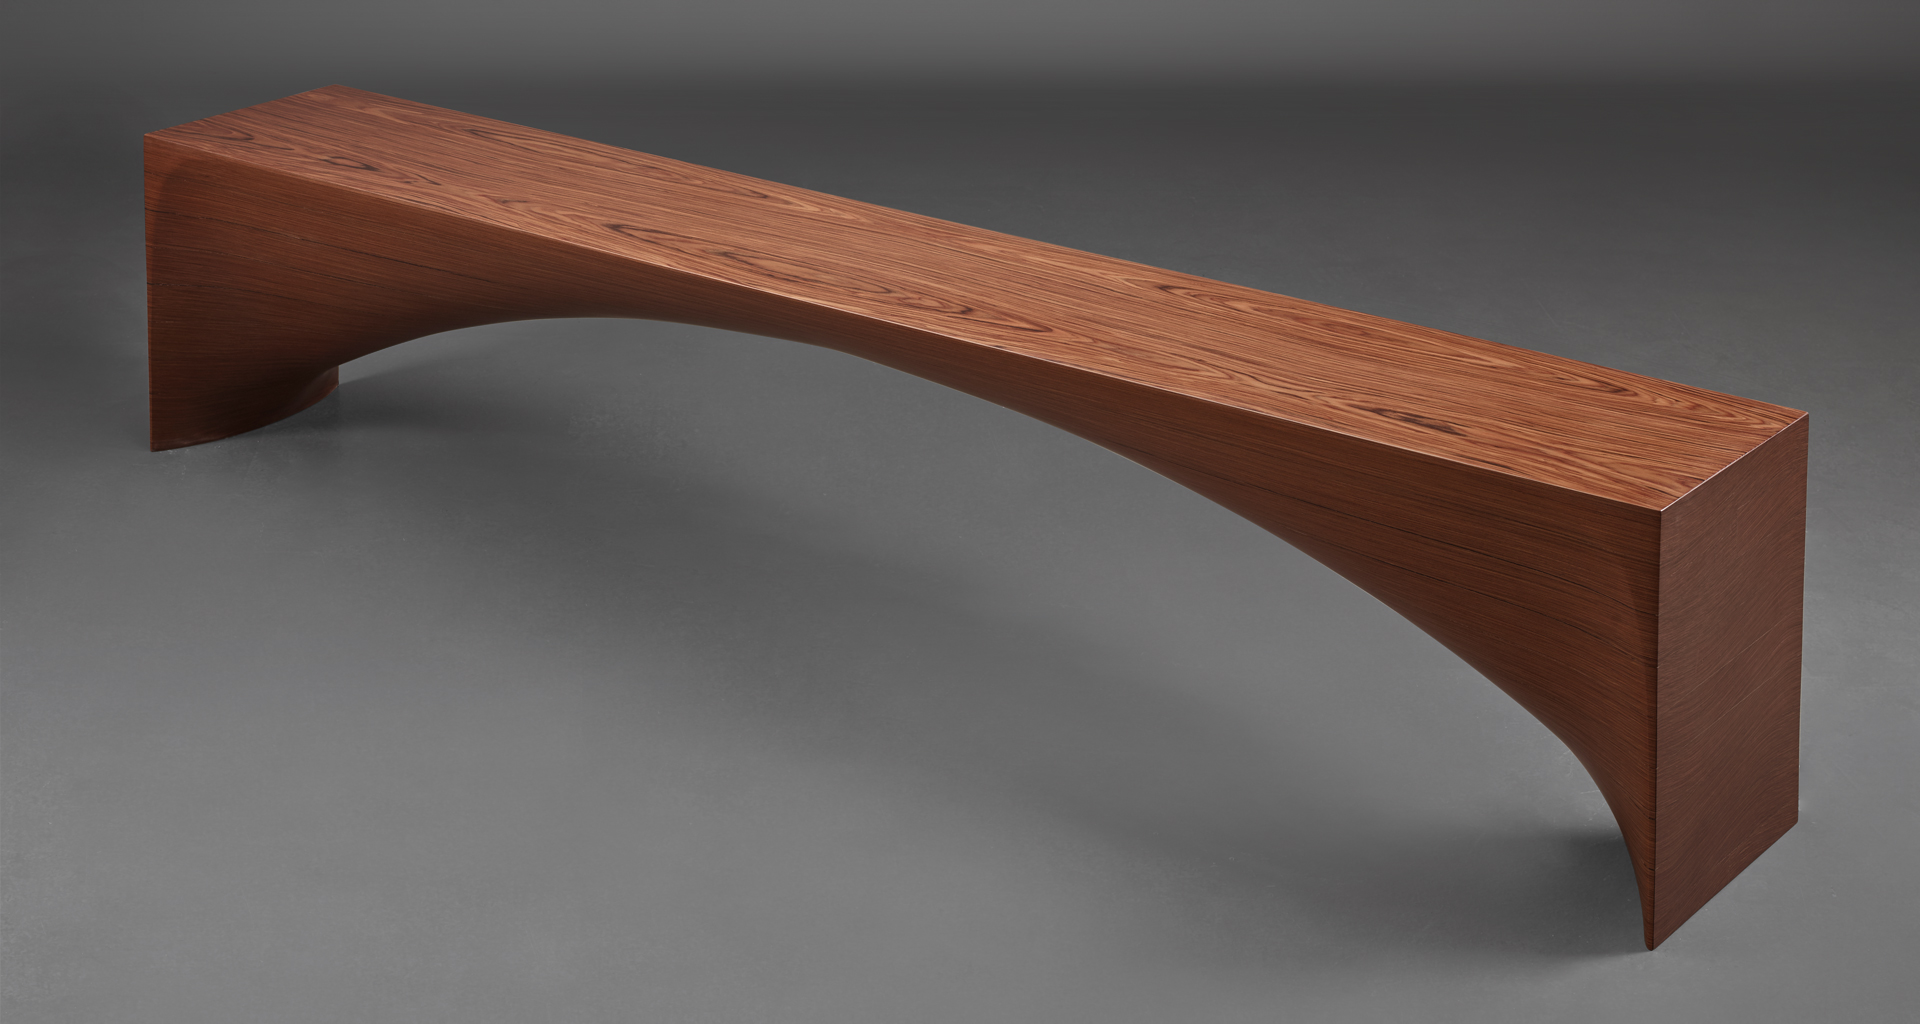 Kumo is a minimalist wooden bench, from Promemoria's Capsule Collection by Bruno Moinard | Promemoria